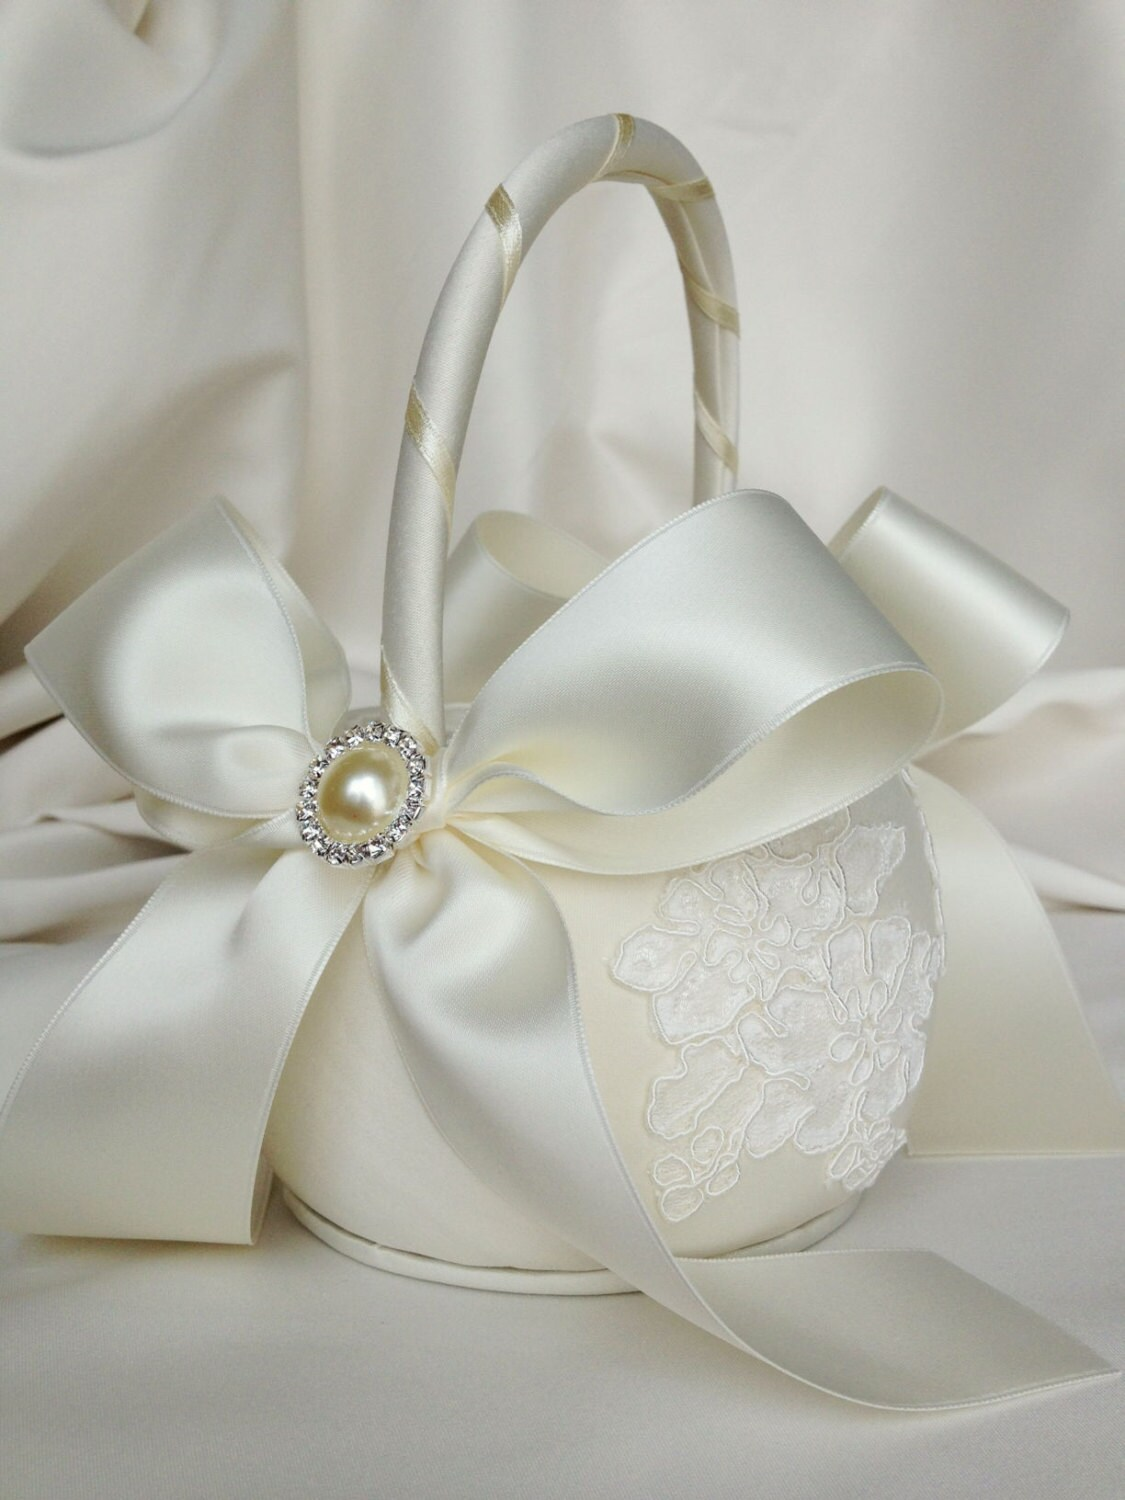 Flower Girl Baskets Ivory Uk : Ivory flower girl basket alencon lace by weddingsandsuch